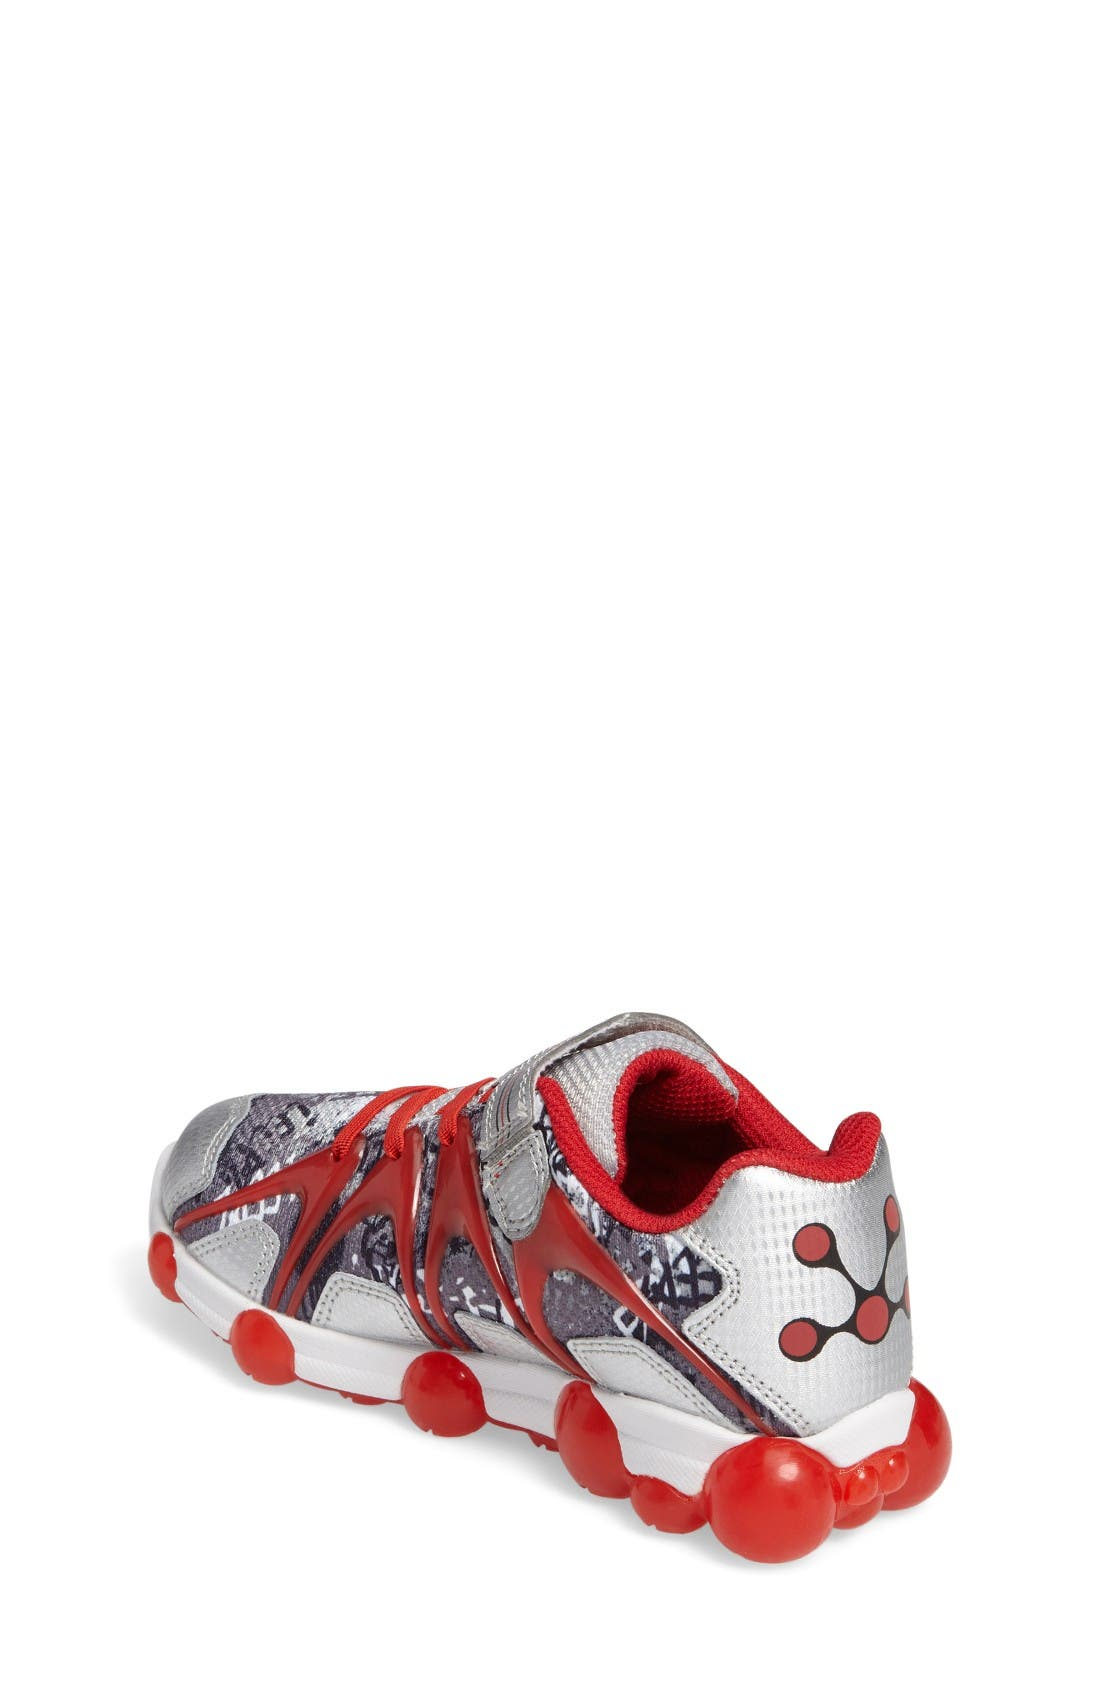 'Leepz' Light-Up Sneaker,                             Alternate thumbnail 2, color,                             Red/ Silver